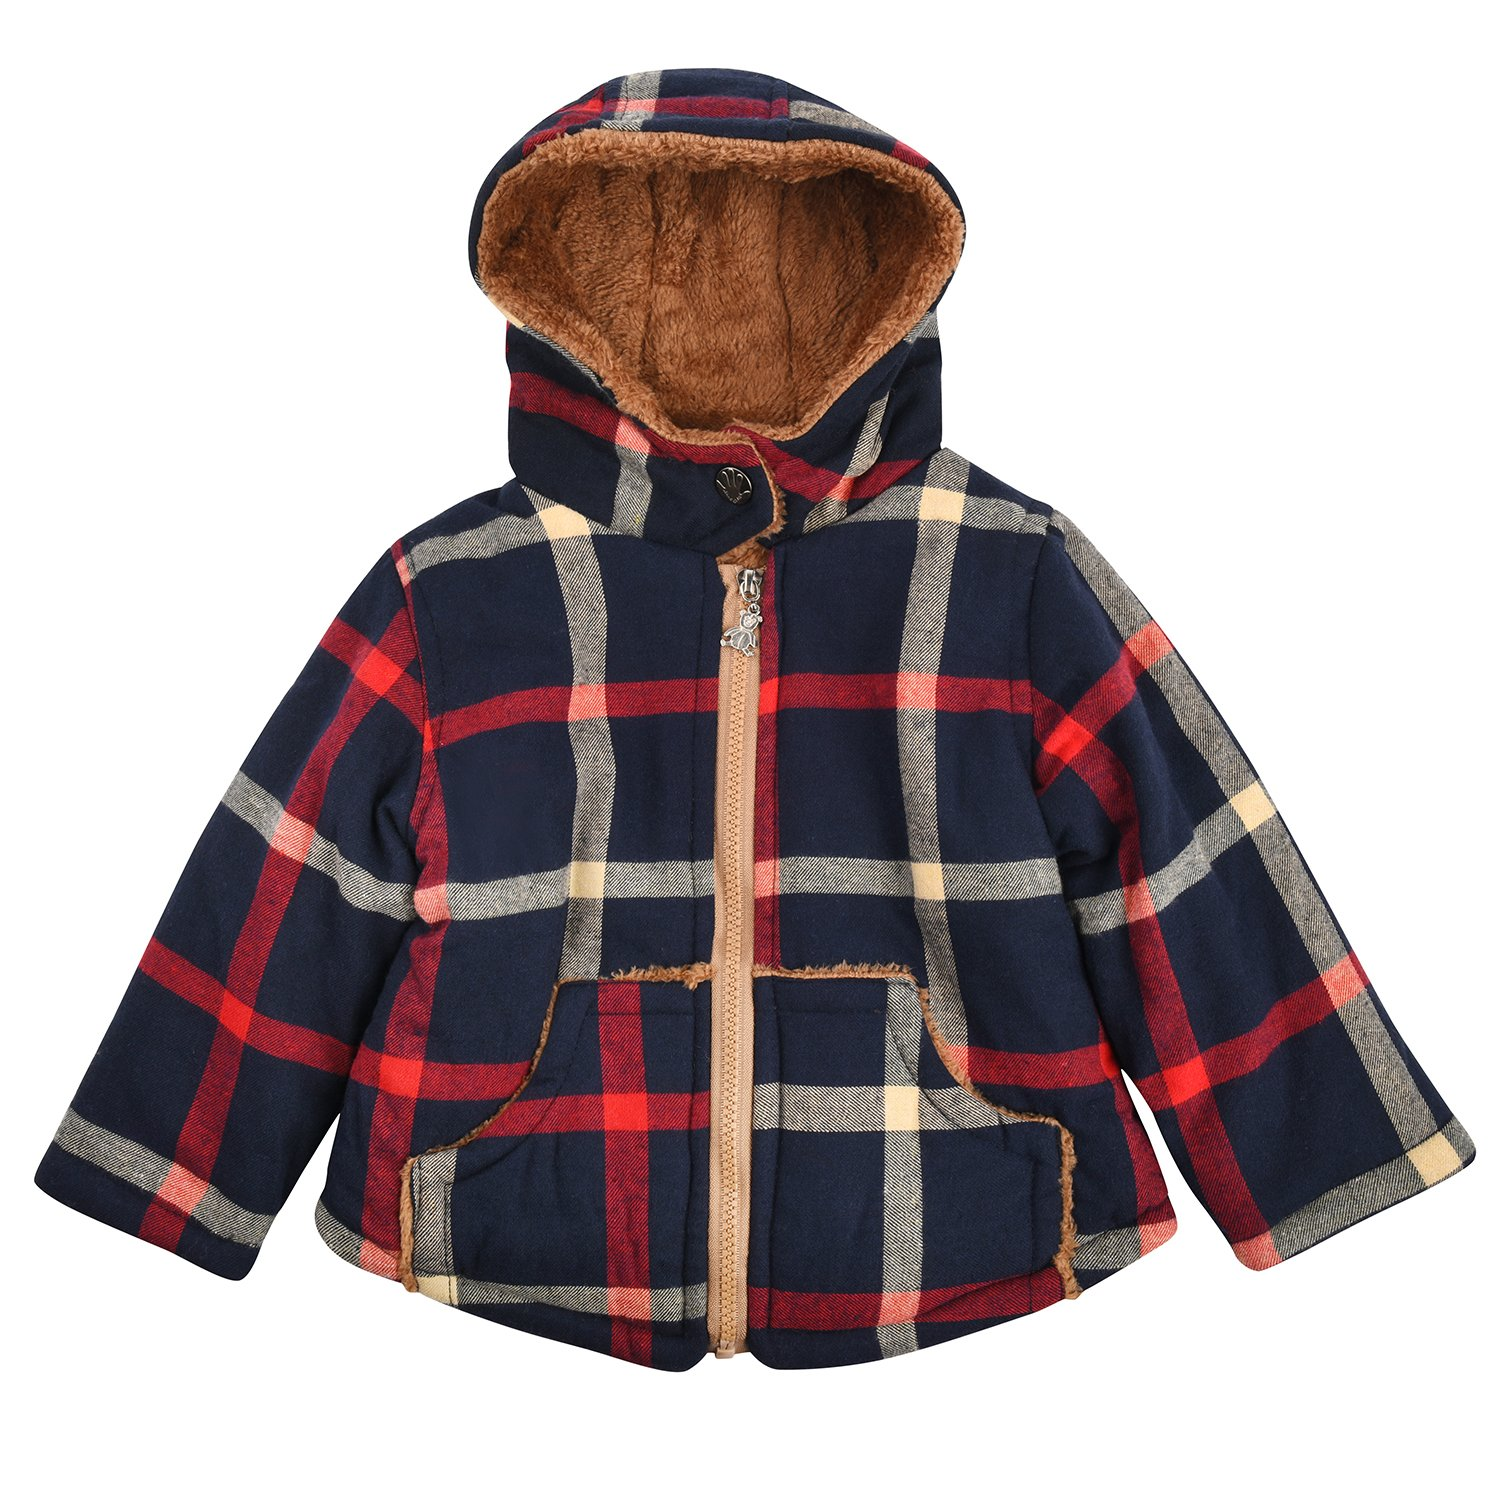 Little Hand Baby Boys Fleece Lined Zip up Hooded Winter Coat Navy Plaid Jacket 20171031A02